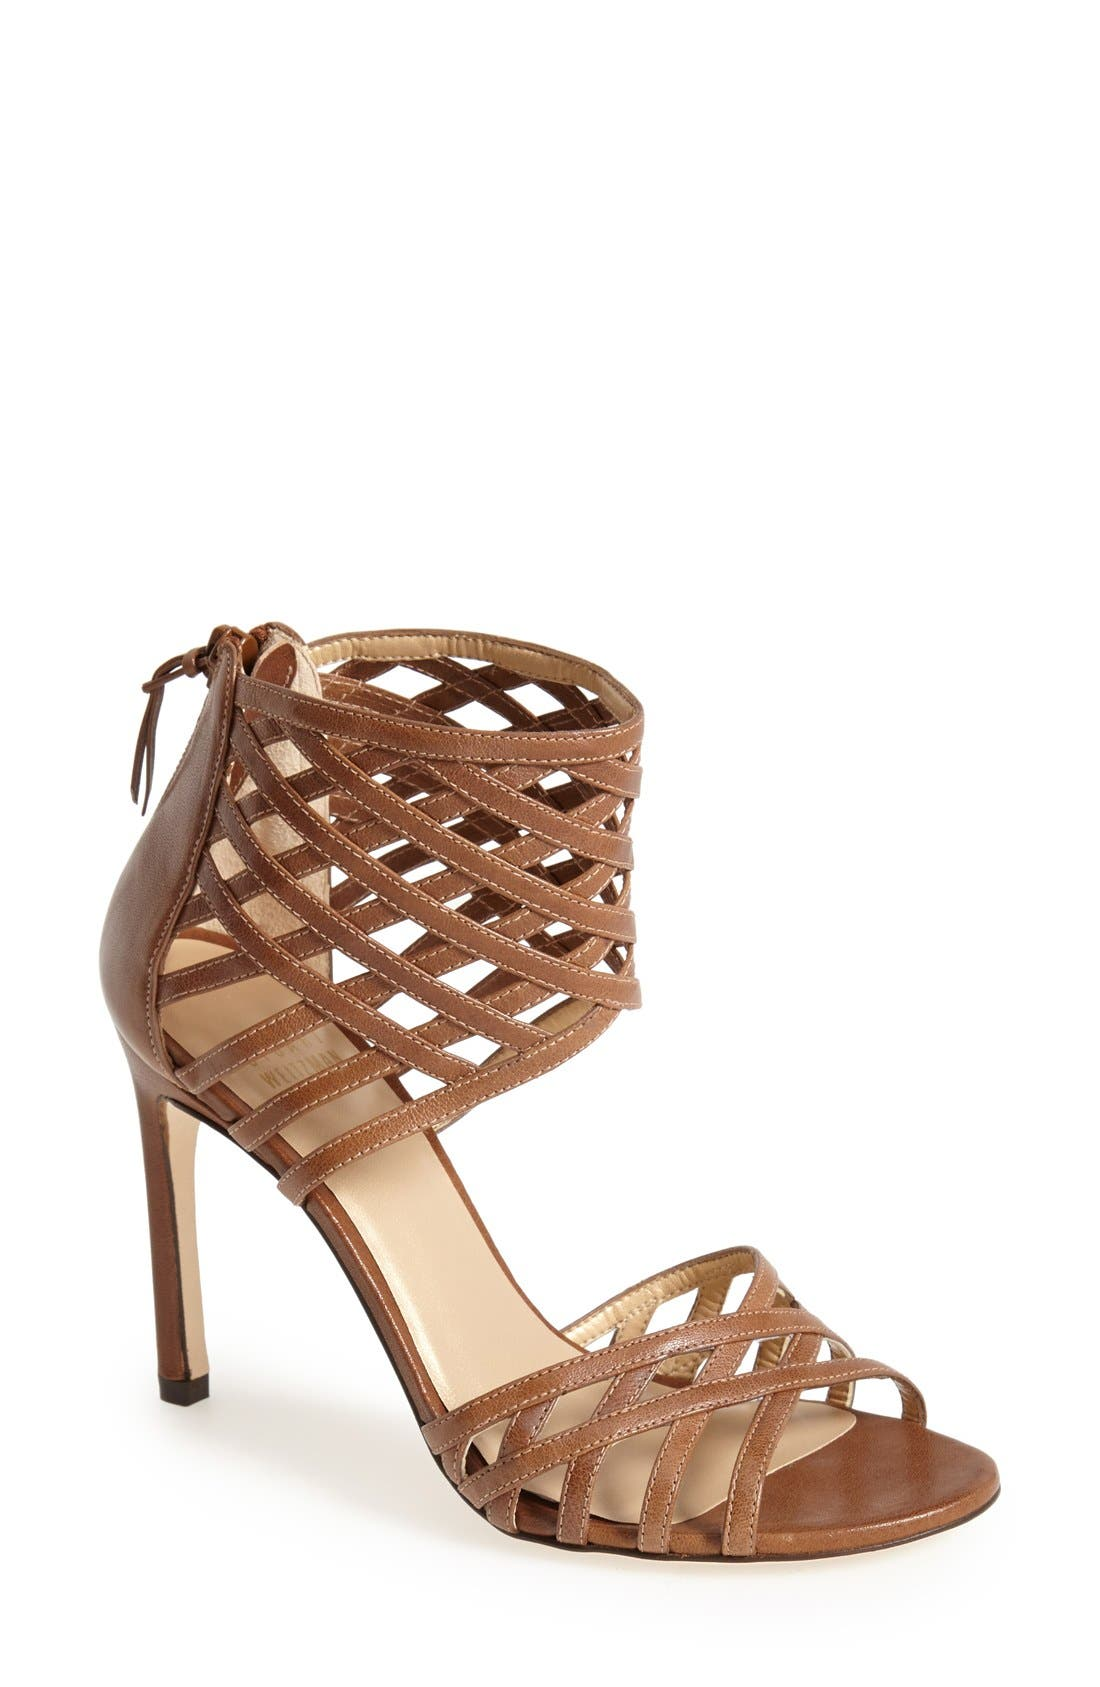 Alternate Image 1 Selected - Stuart Weitzman 'Cajun' Leather Sandal (Women)